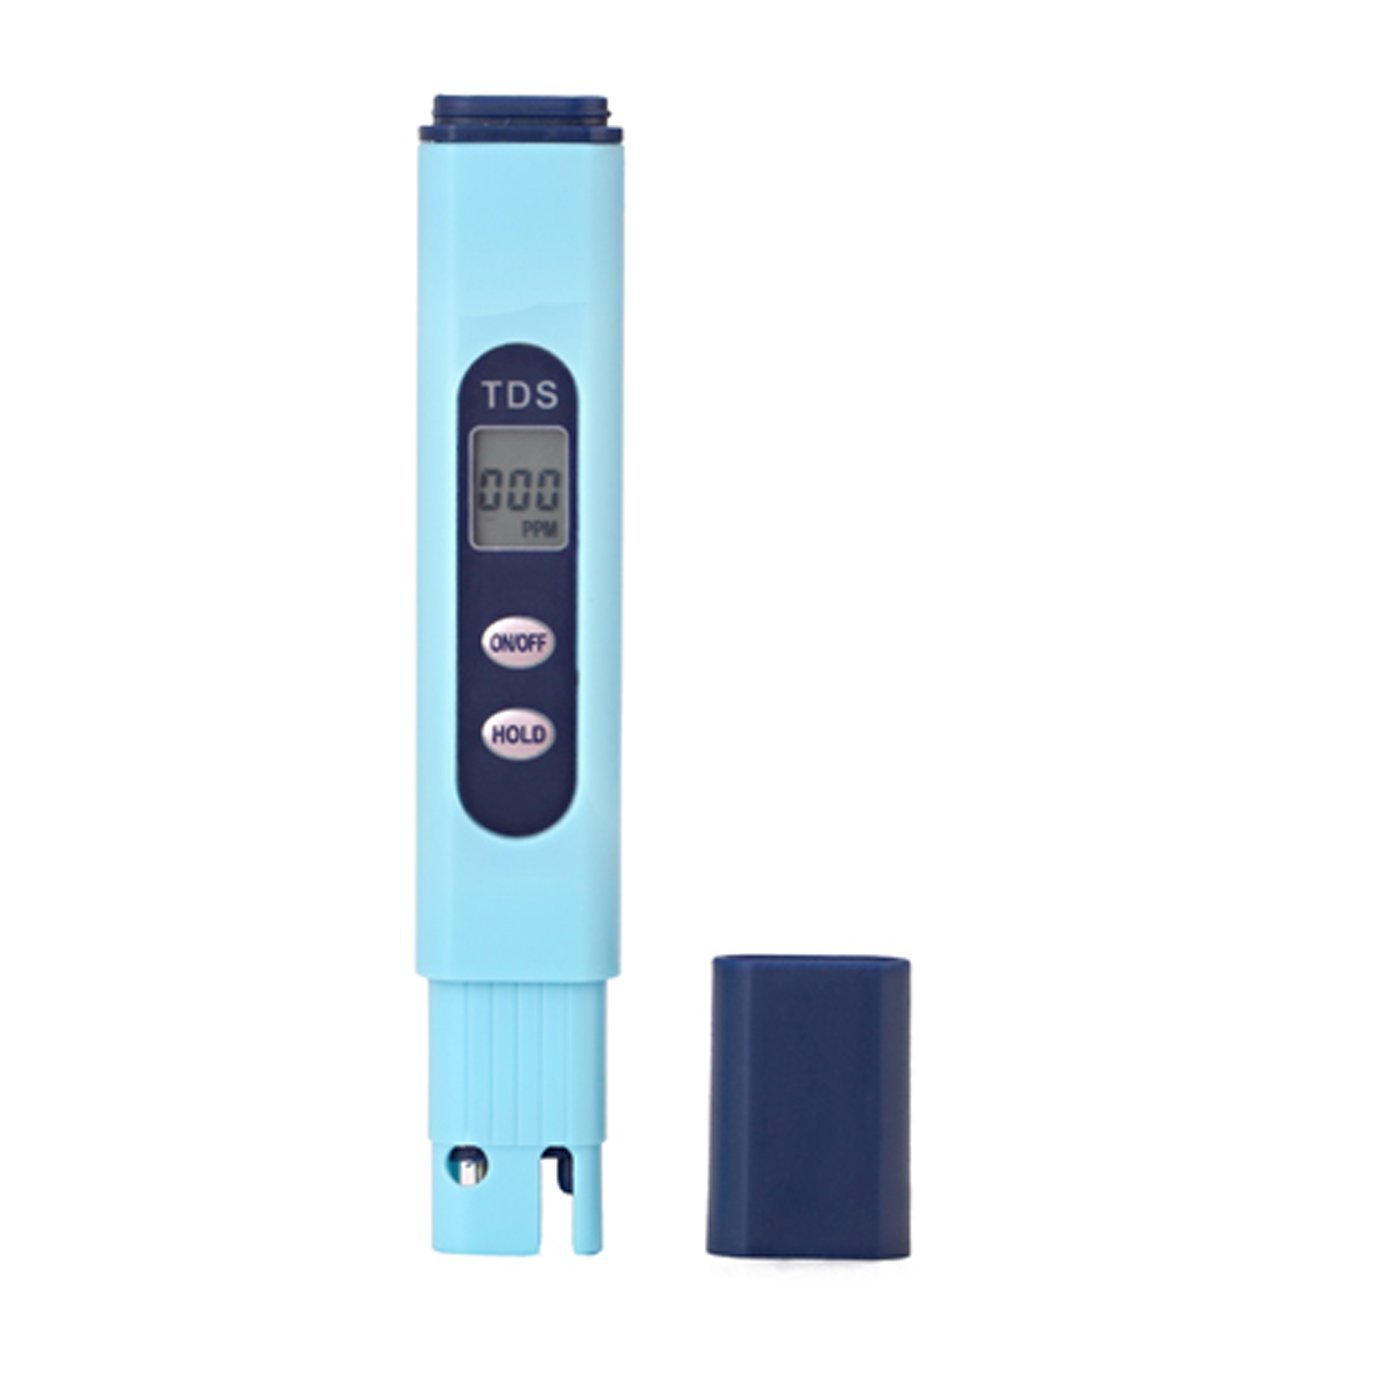 Huanhuatiancheng Digital Handheld Temperature TDS ( PPM ) Tester, 0 - 9990 ppm, 1 ppm Resolution, +/- 2% High Accuracy Testing Water Quality (Blue) by huanhuatiancheng